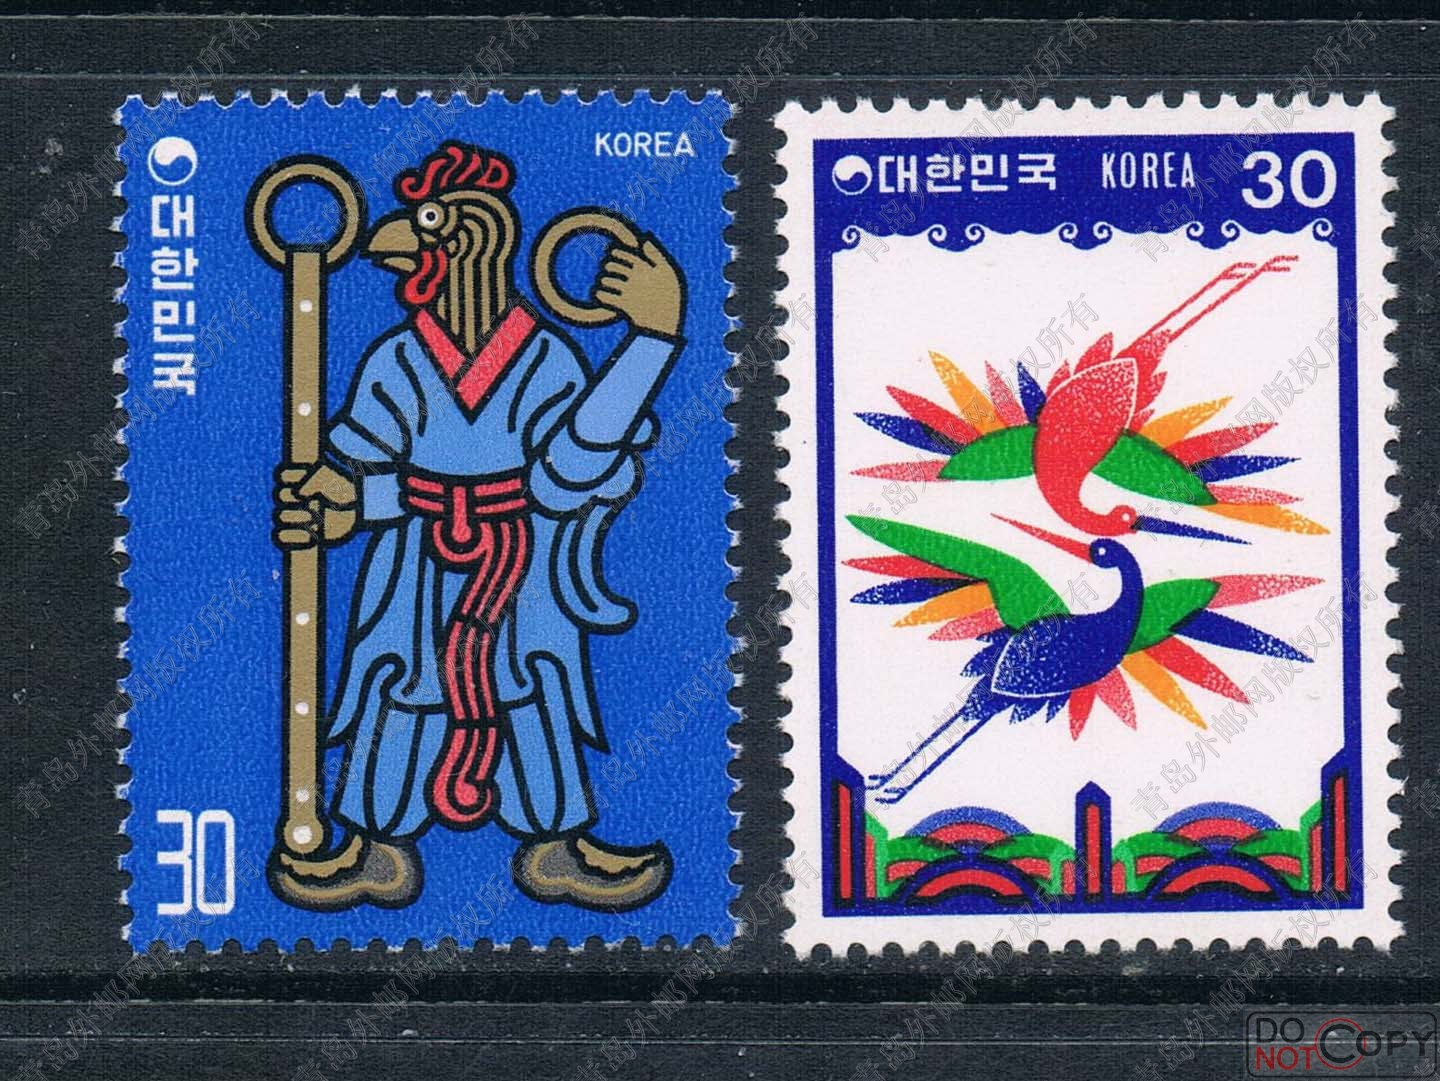 KR0757 South Korea 1980 Zodiac chicken stamps 2 new 0209 робот zodiac ov3400